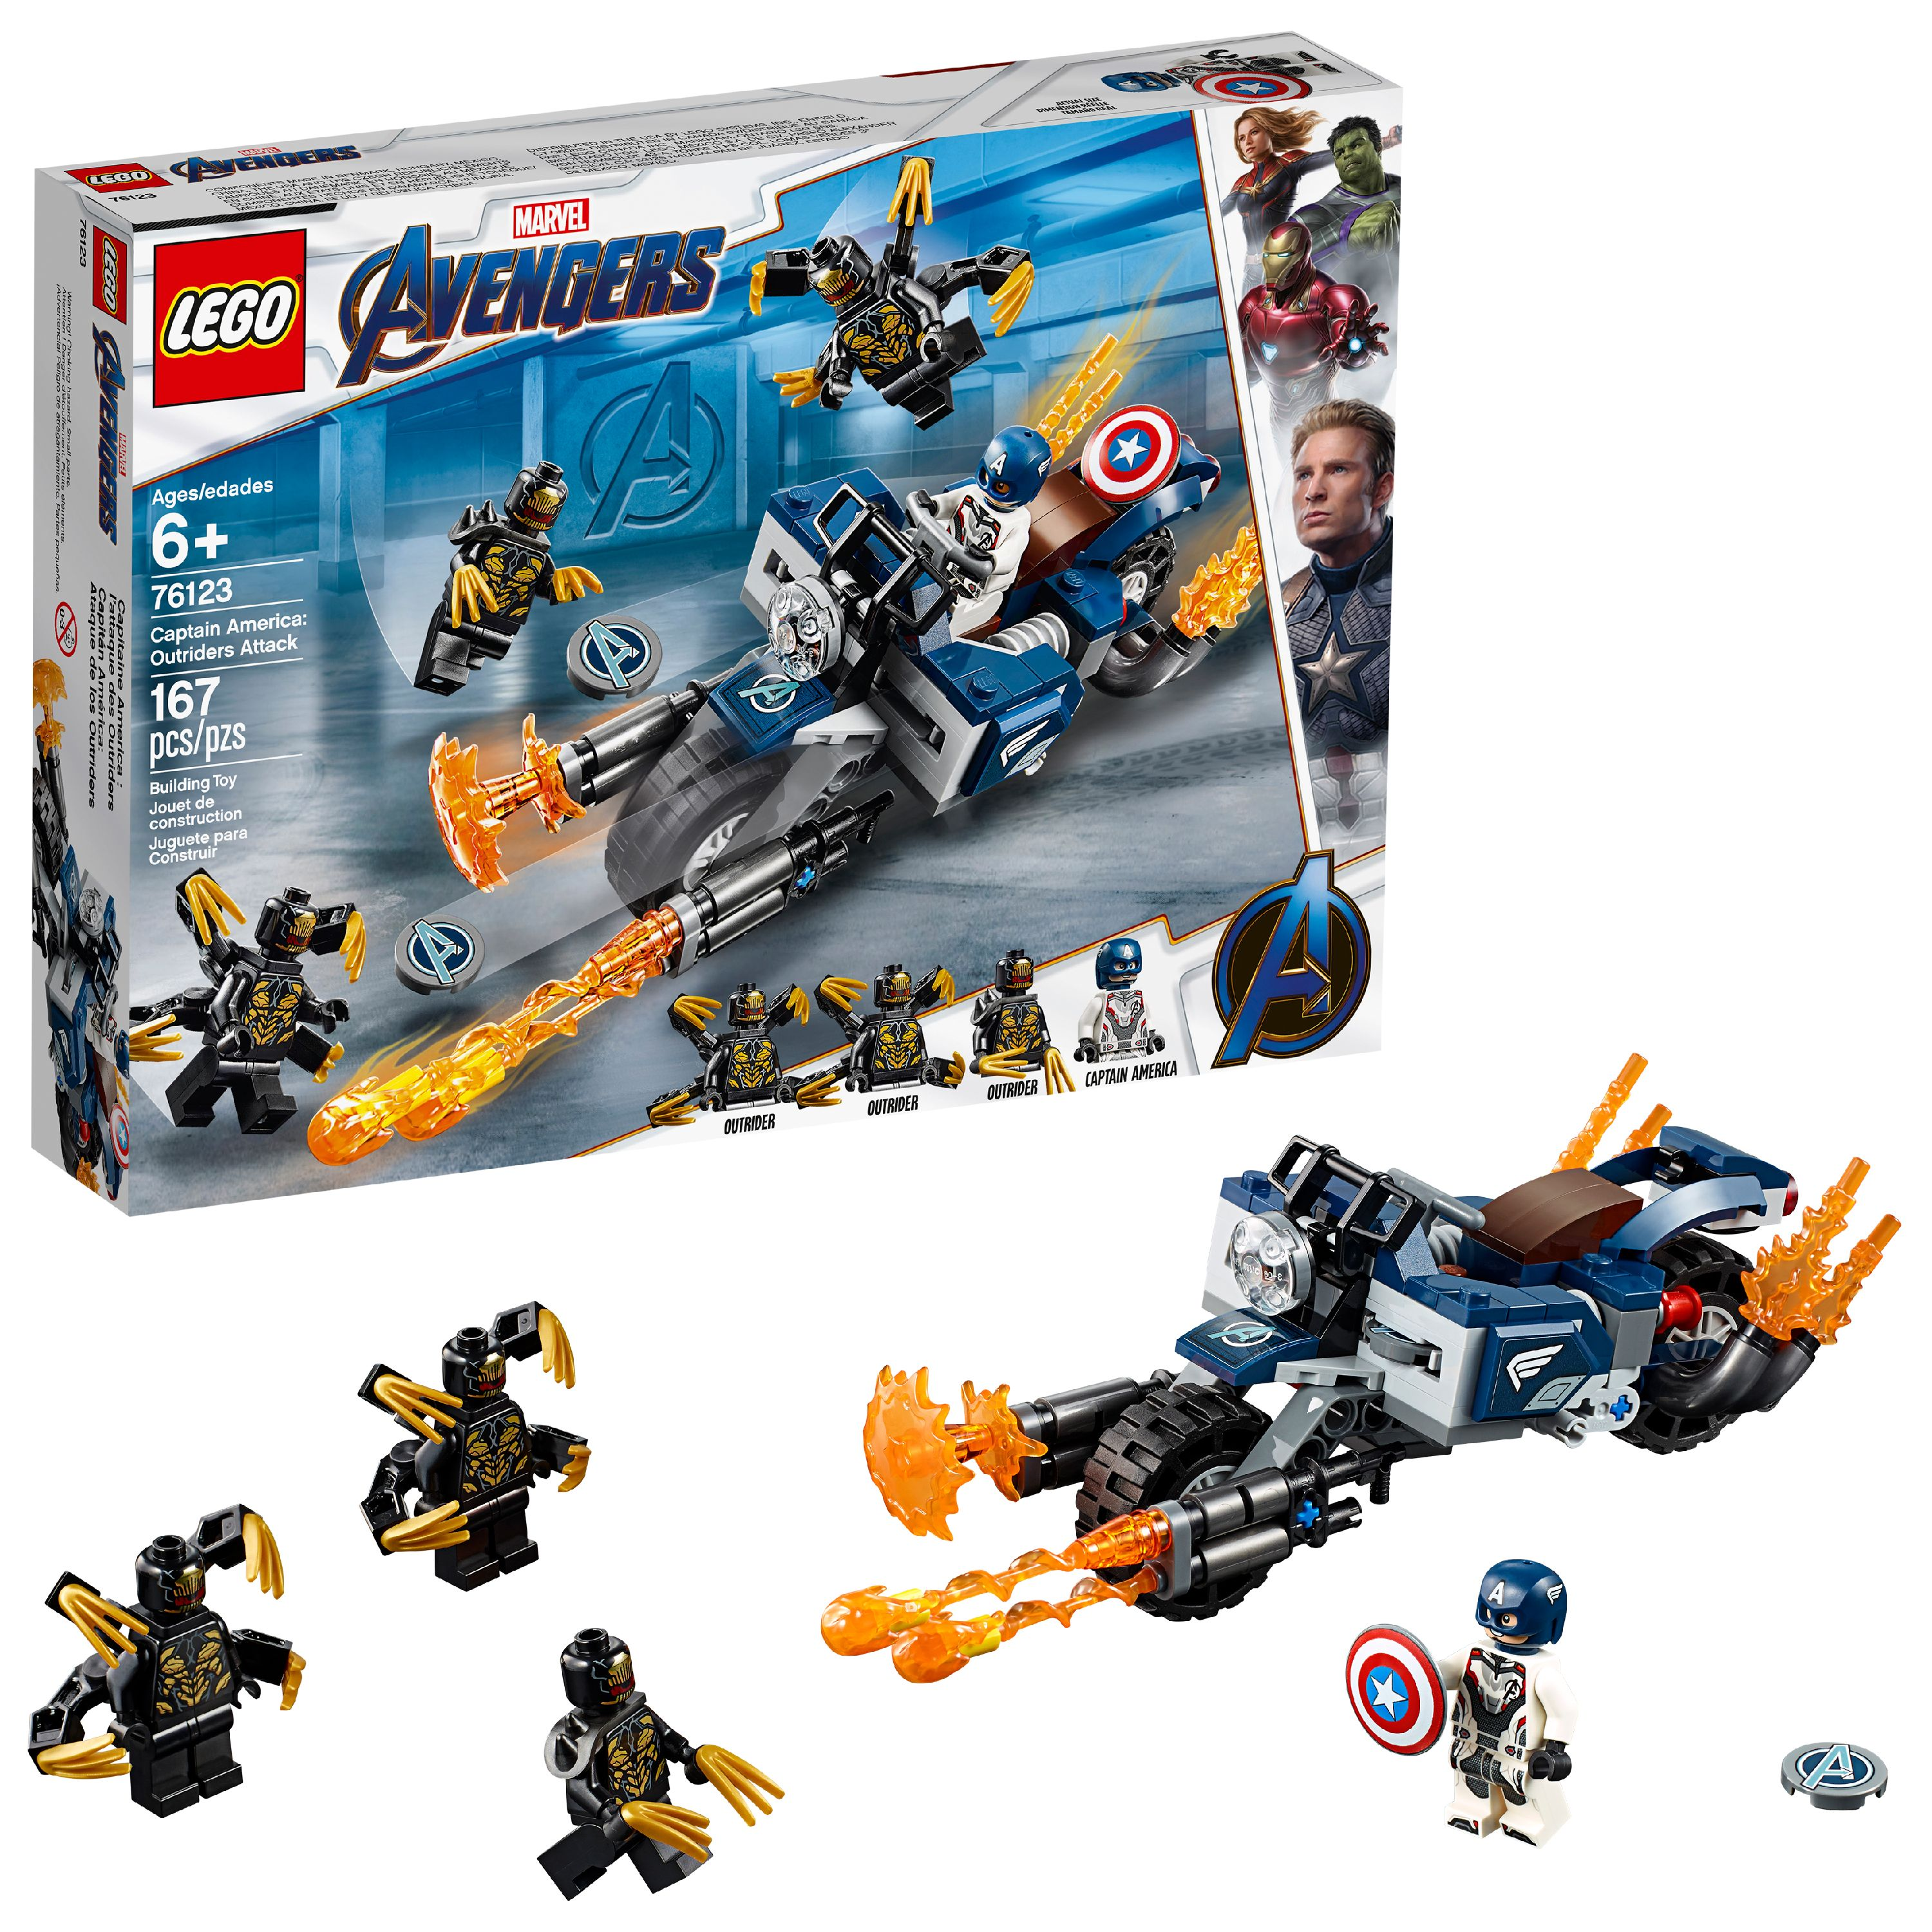 LEGO Marvel Avengers Captain America: Outriders Attack 76123